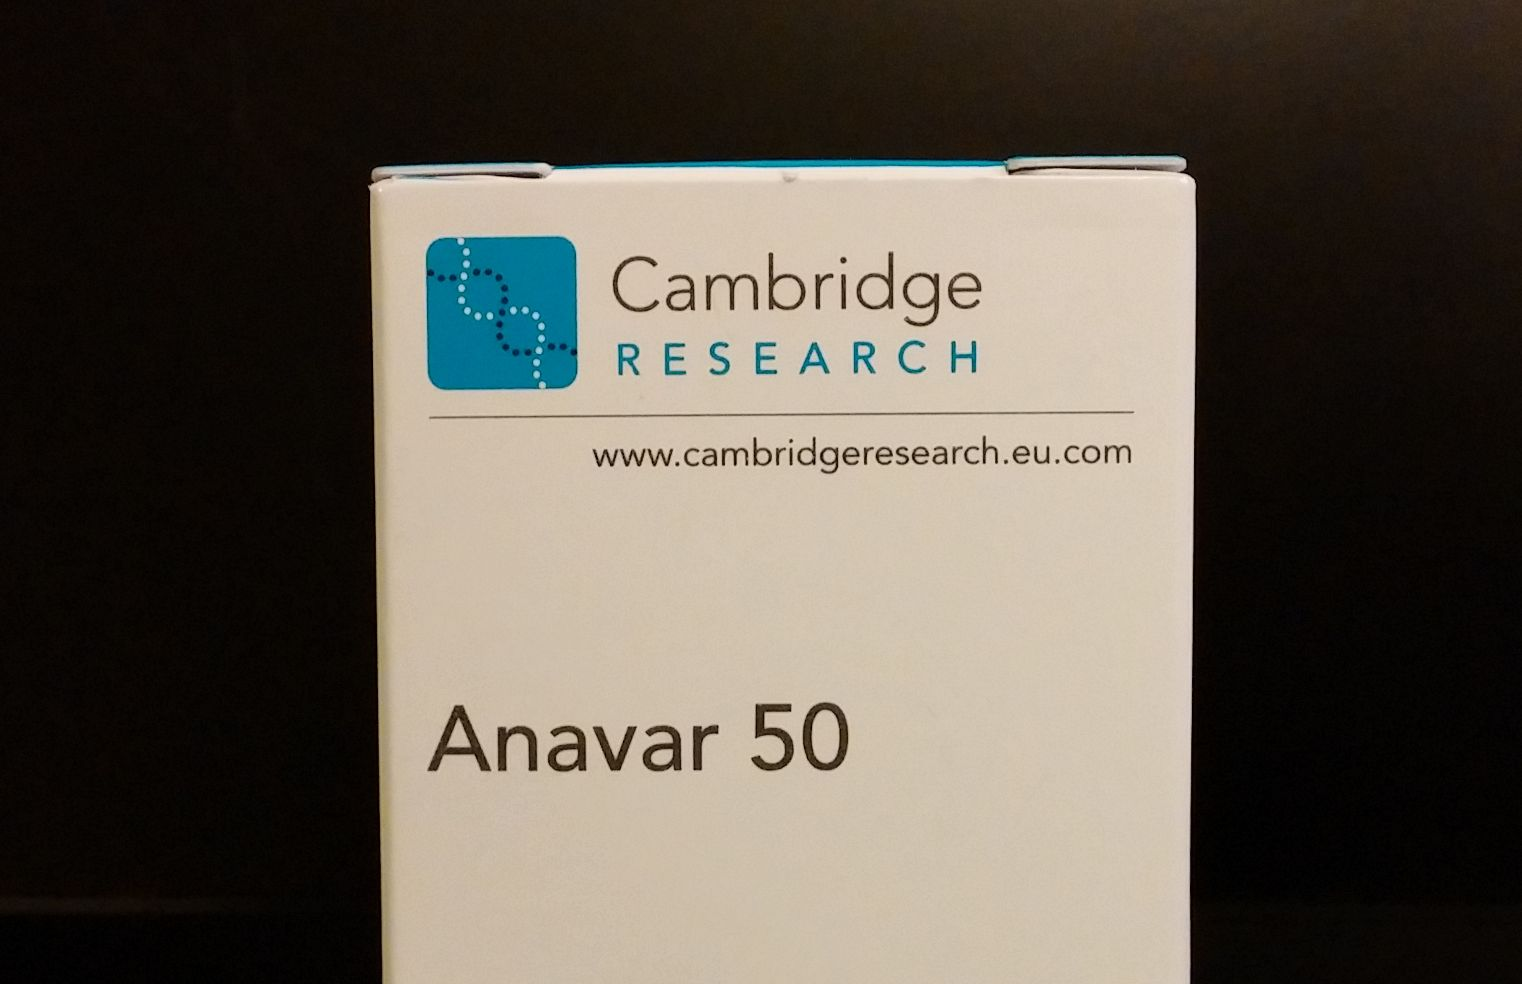 Actual content : Cambridge Research Anavar 50 was determined to have